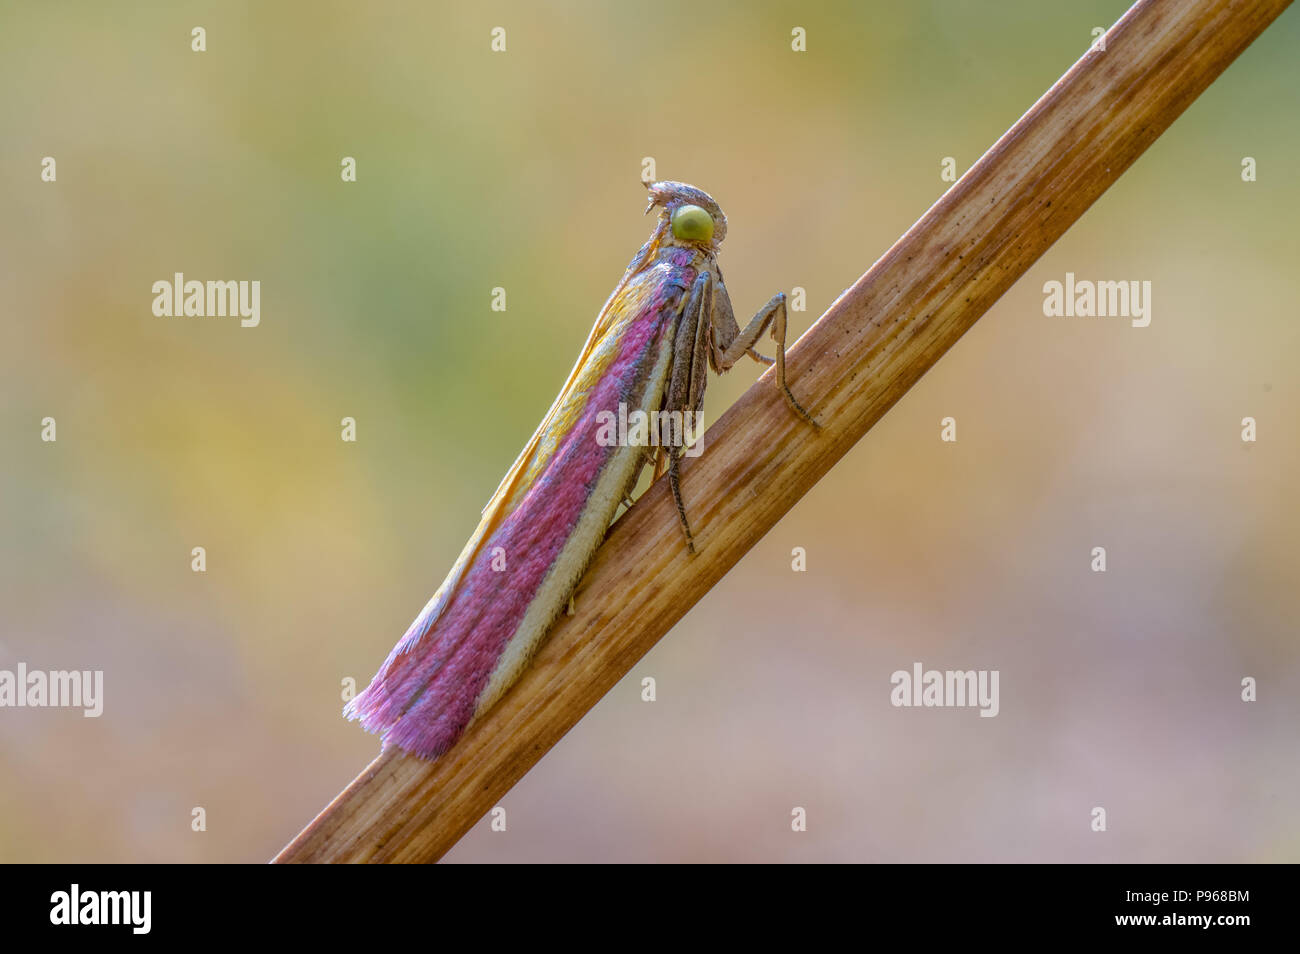 Oncocera semirubella micro moth on sedge. Insect in the family Pyralidae at rest, with striking purple and yellow colouration - Stock Image